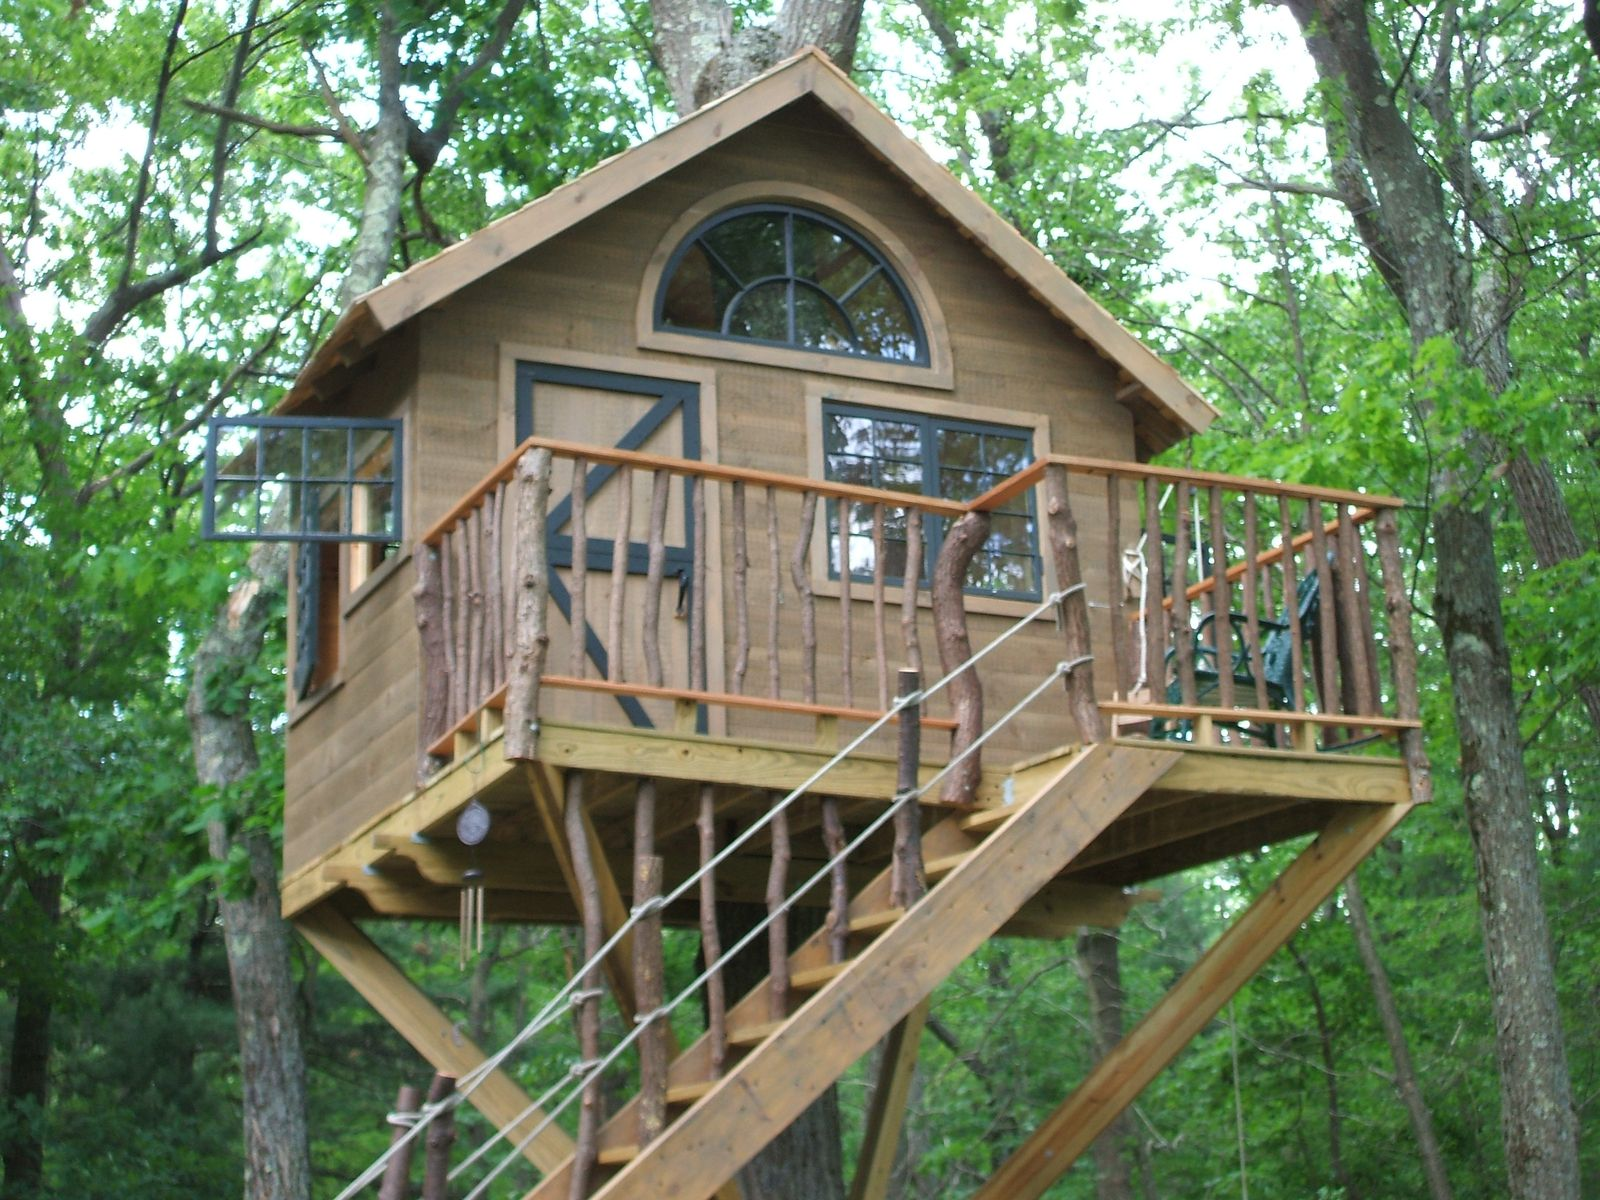 Handmade whimsical treehouse by wooden hammer llc for Simple house design made of wood